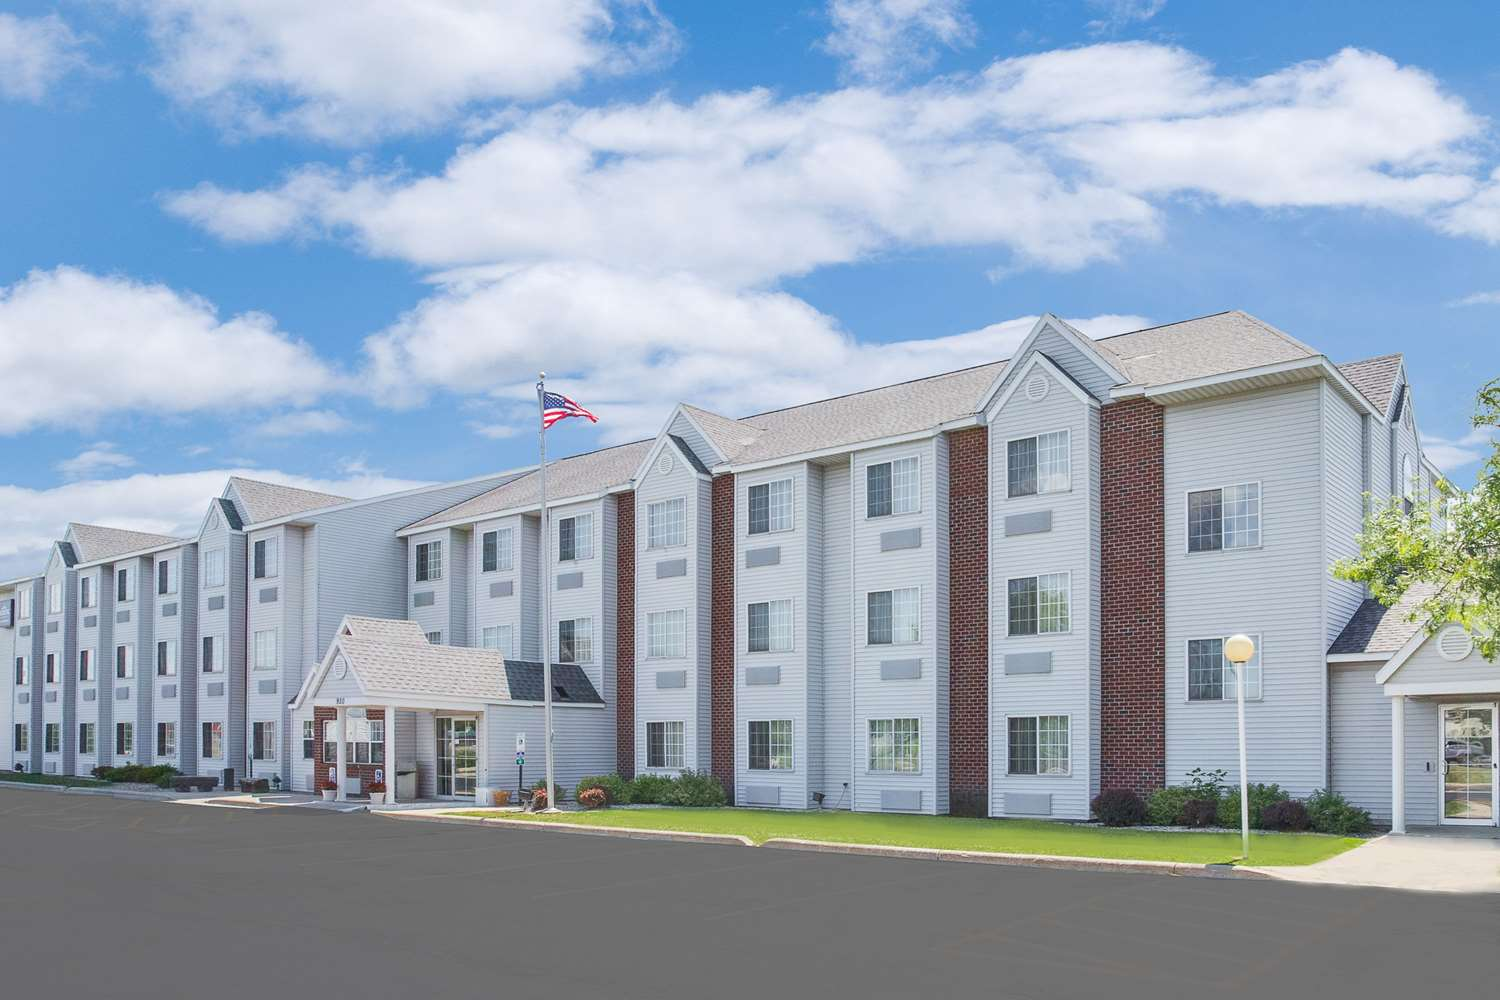 Exterior view - Microtel Inn & Suites by Wyndham Fond du Lac